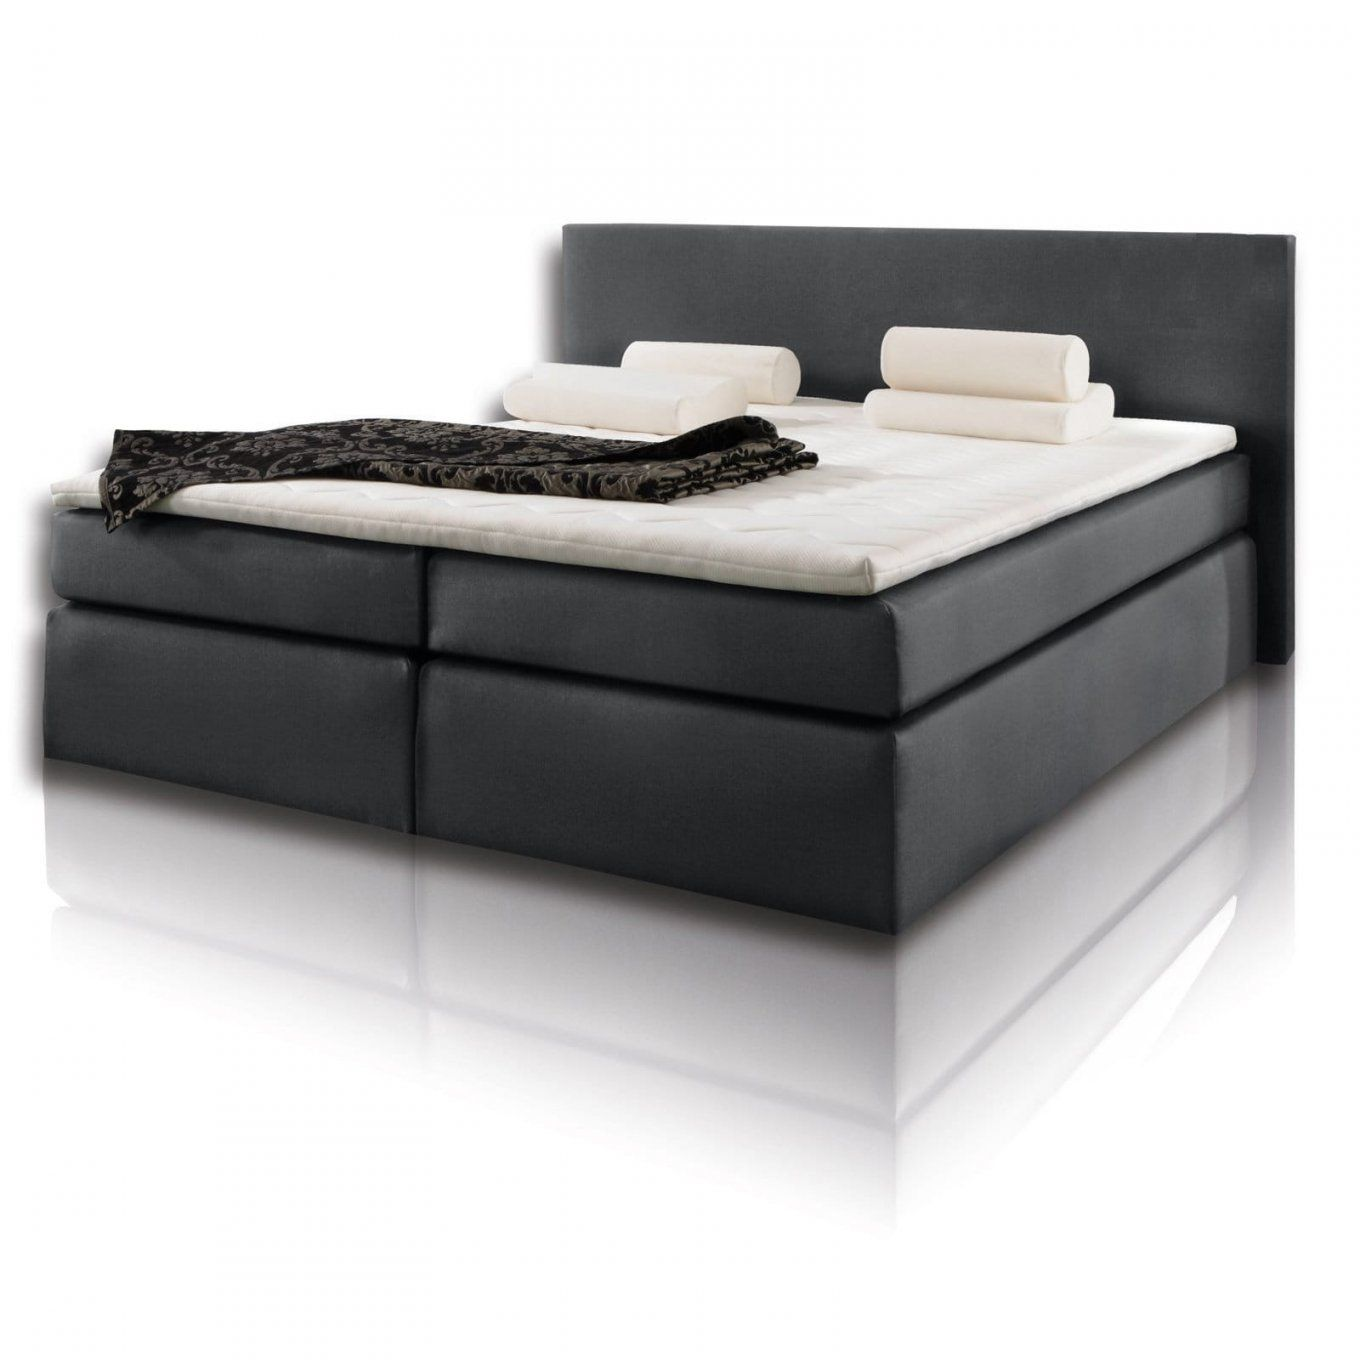 Lovely Boxspringbett Santa Barbara Grau 180×200 Cm Boxspringbetten von Boxspringbett Santa Barbara Photo